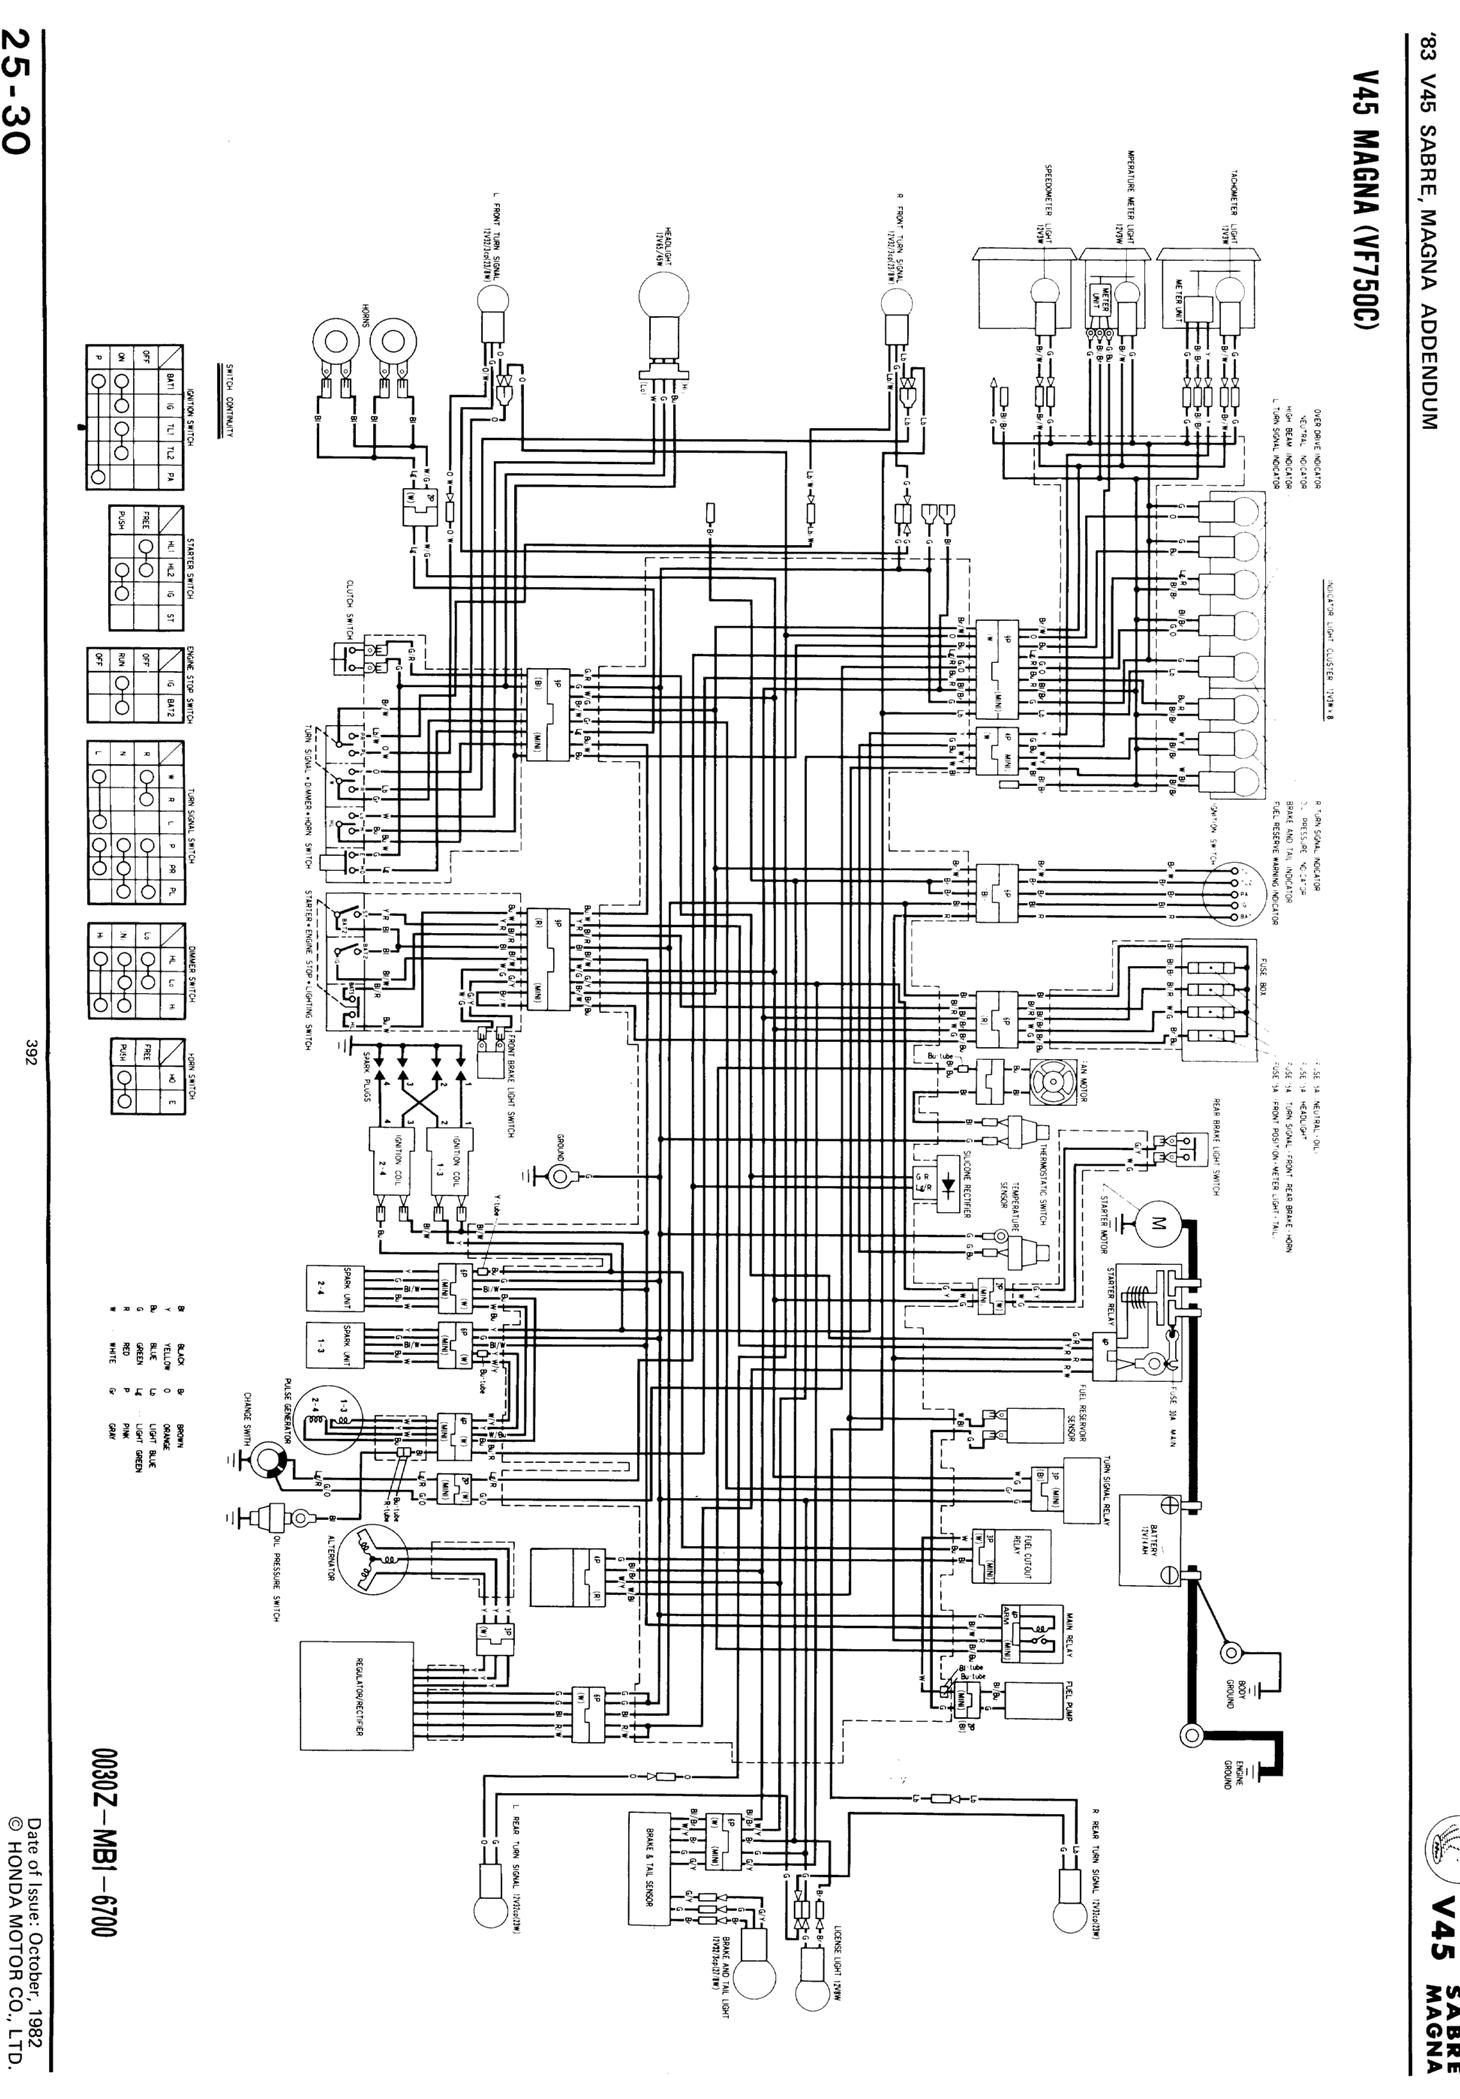 85 Honda Vf700s Wiring Diagram | Wiring Diagram on